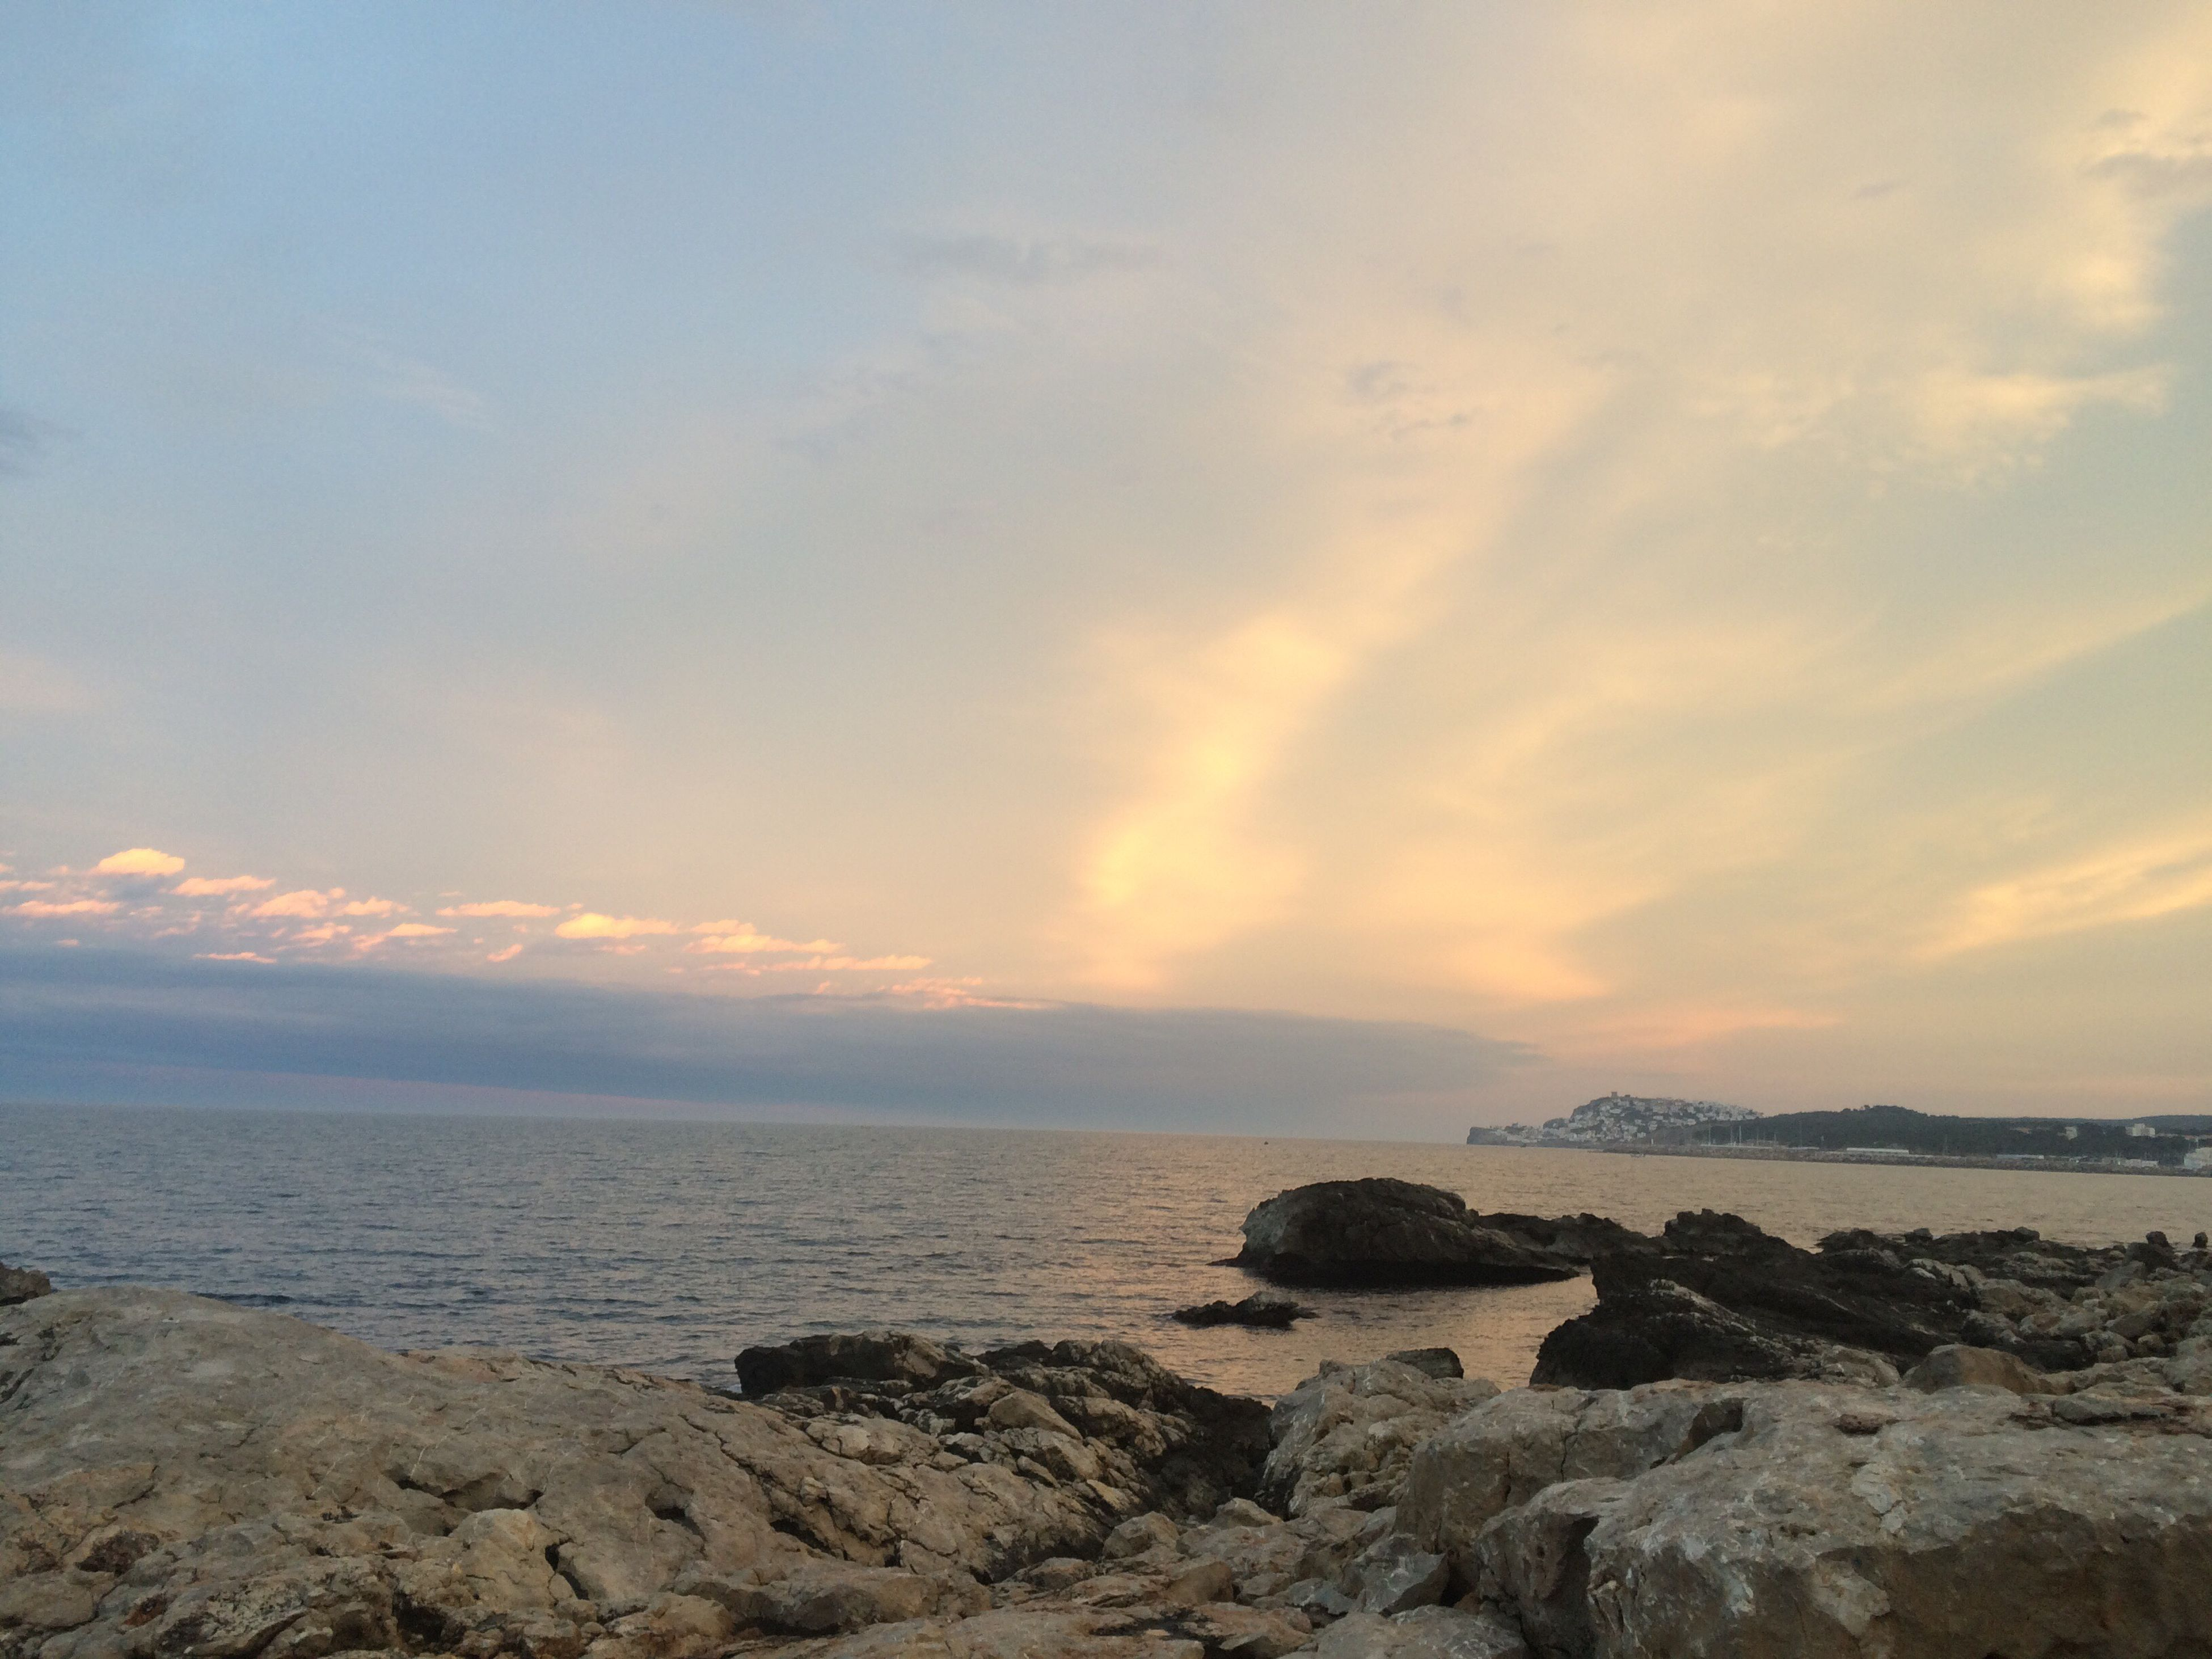 sea, water, scenics, sunset, horizon over water, sky, tranquil scene, tranquility, beauty in nature, rock - object, beach, nature, shore, cloud - sky, idyllic, orange color, rock, cloud, rock formation, outdoors